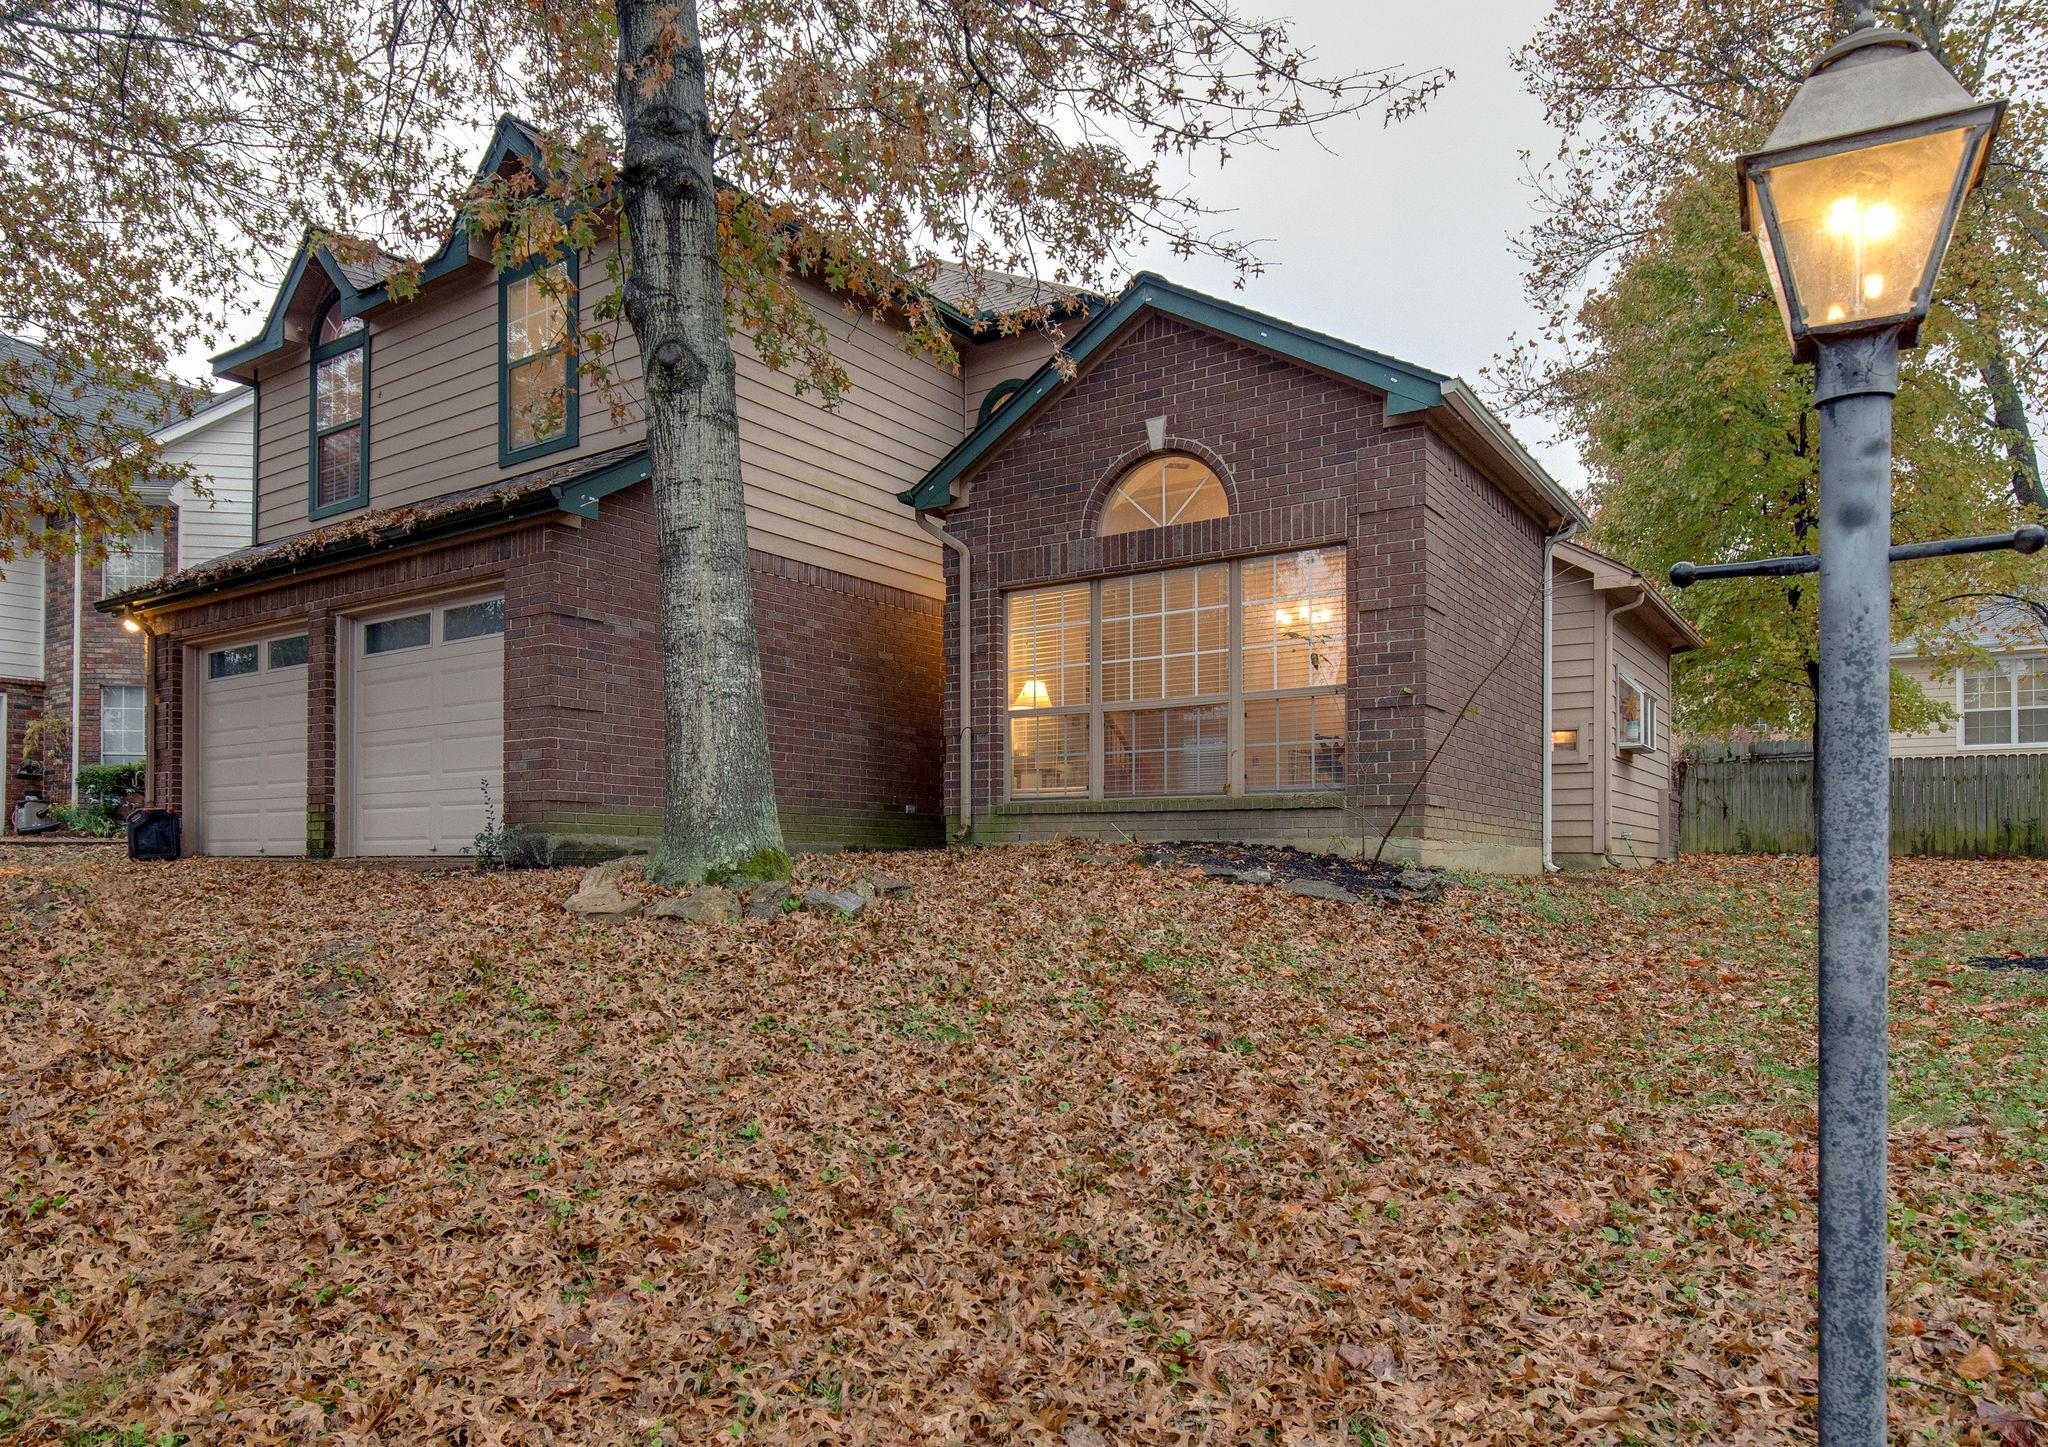 2933 Chapelwood Dr, Hermitage, Tennessee